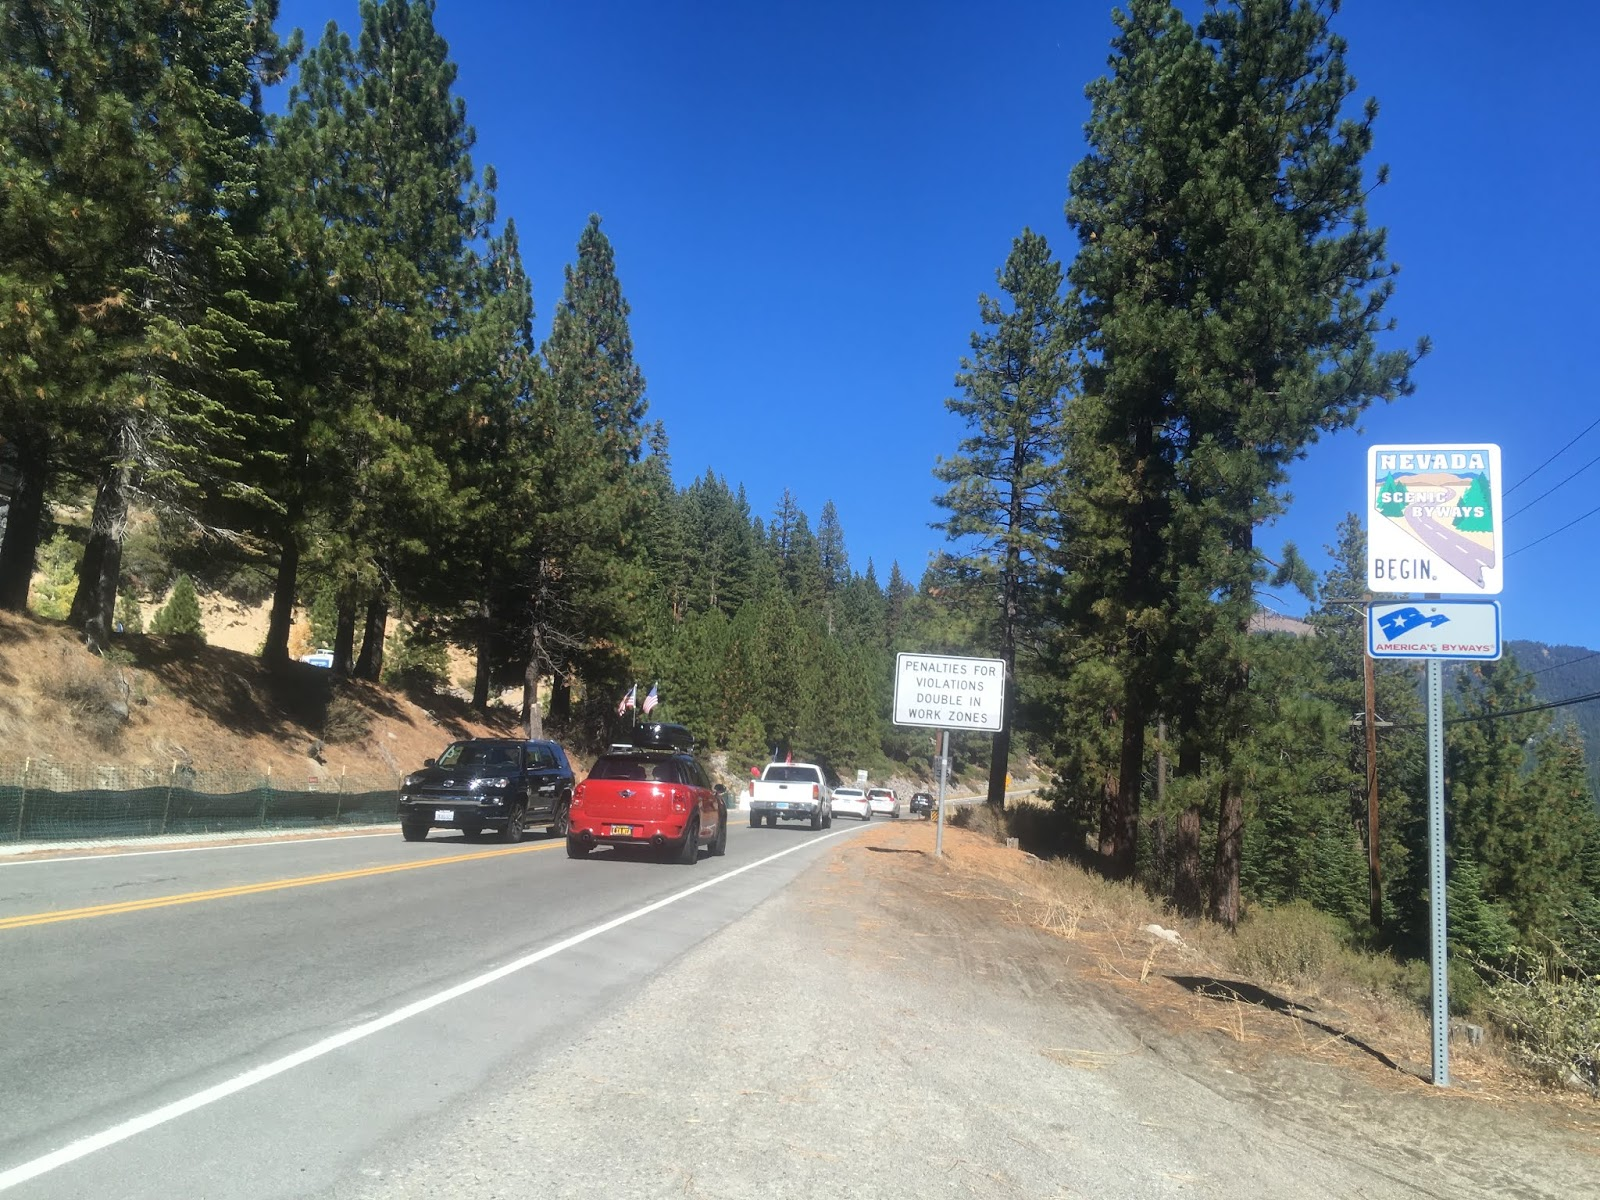 nv 28 is signed as a nevada scenic byway and winds around the north and east shore of lake tahoe to us route 50